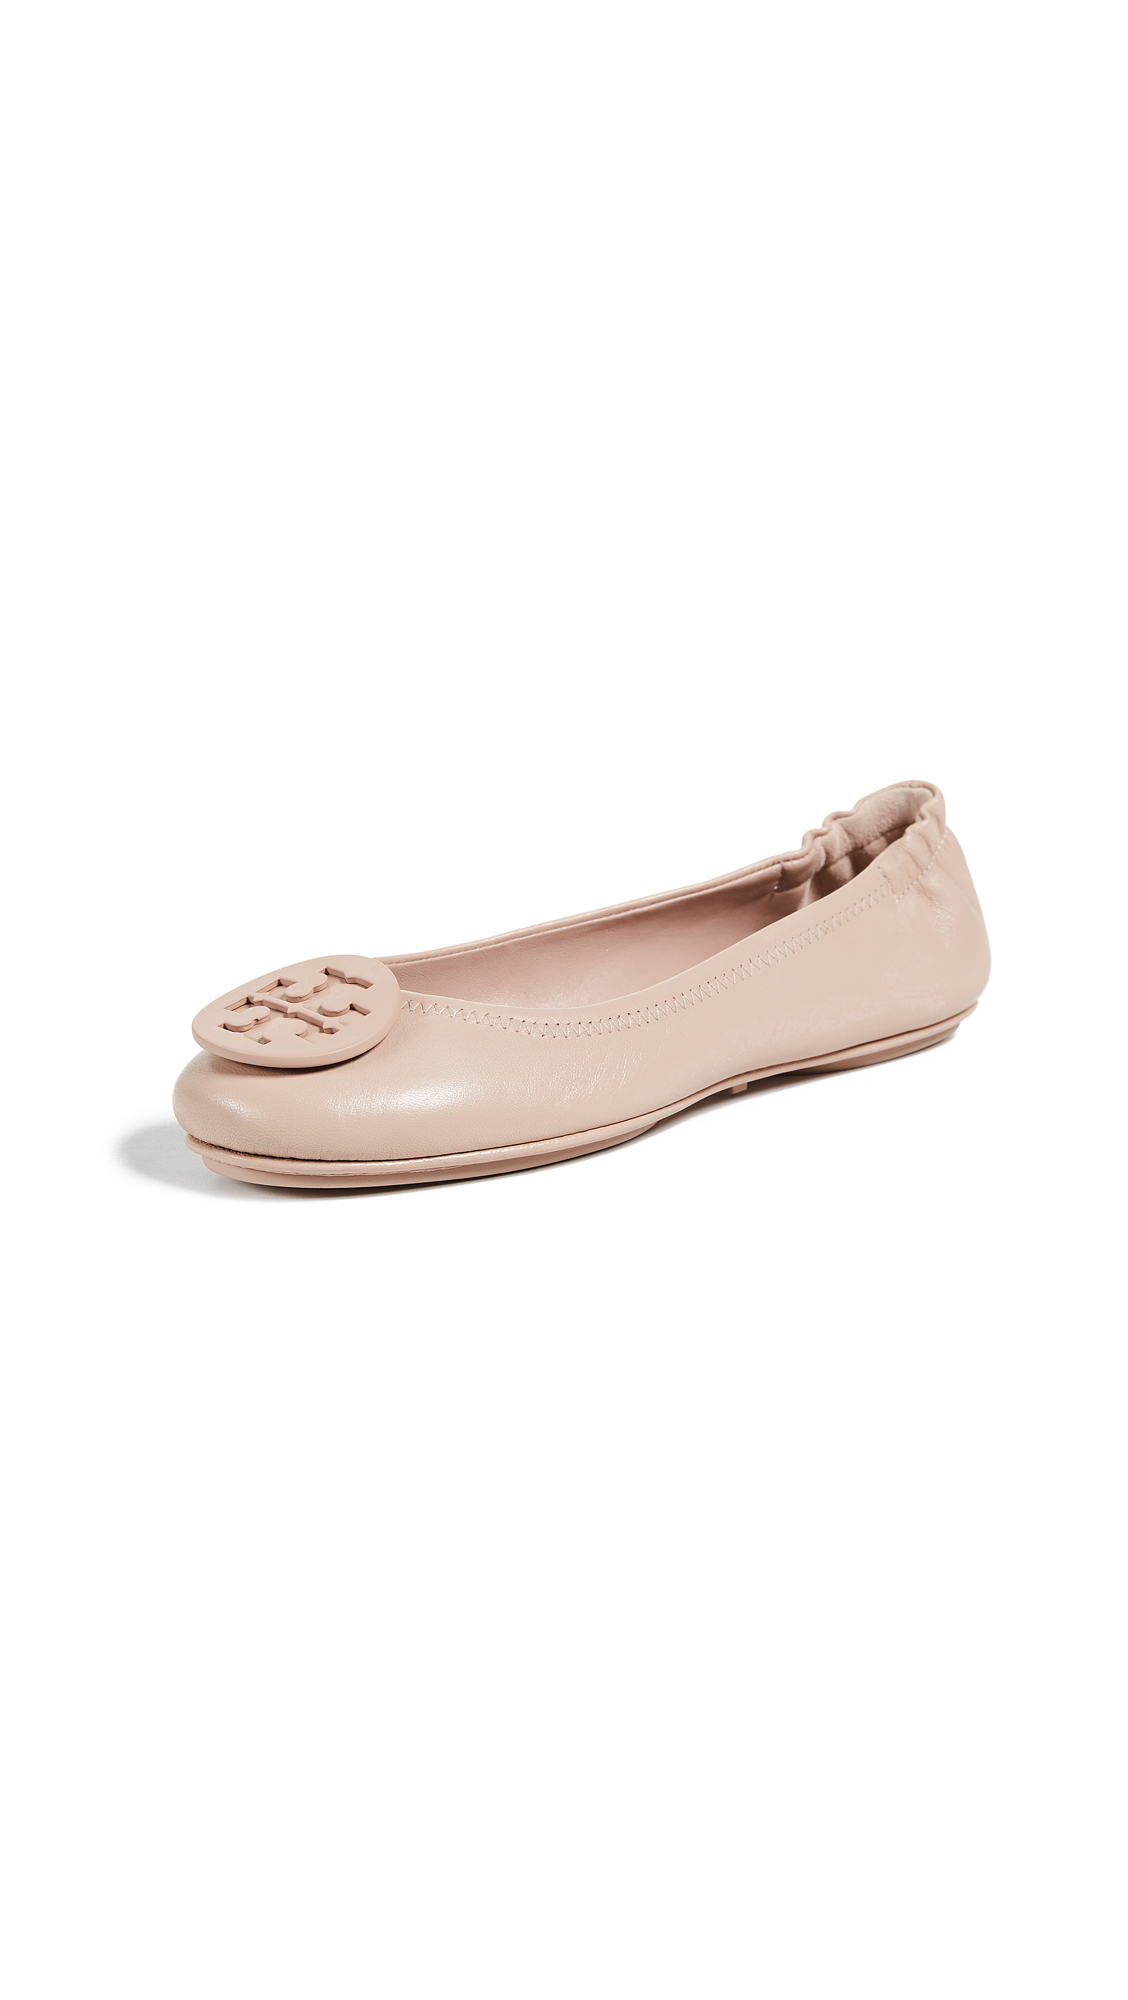 Tory Burch Minnie Travel Ballet Flats - Goan Sand